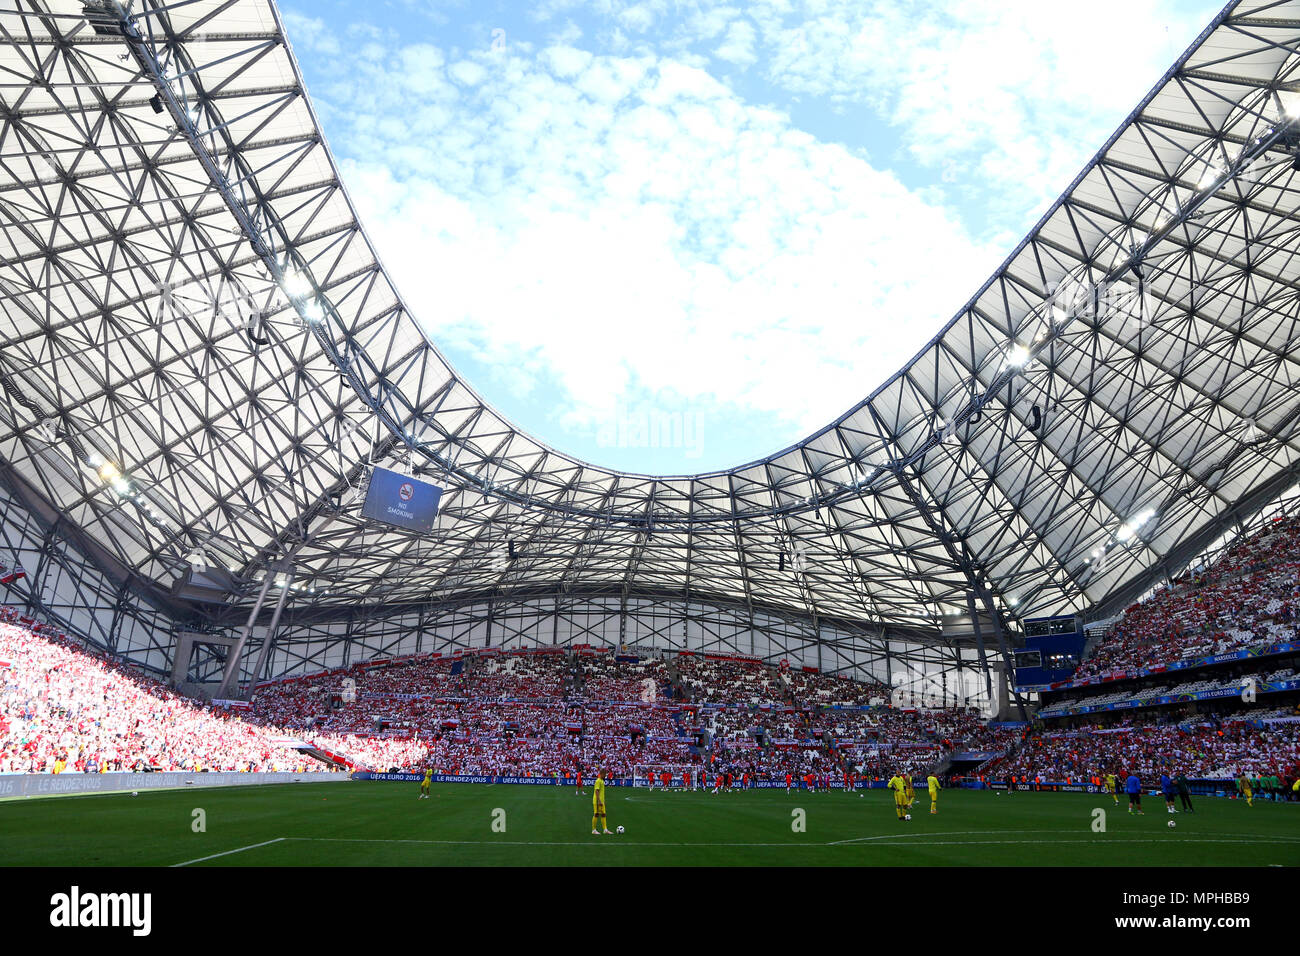 MARSEILLE, FRANCE - JUNE 21, 2016: Panoramic view of Stade Velodrome stadium during the UEFA EURO 2016 game Ukraine v Poland - Stock Image